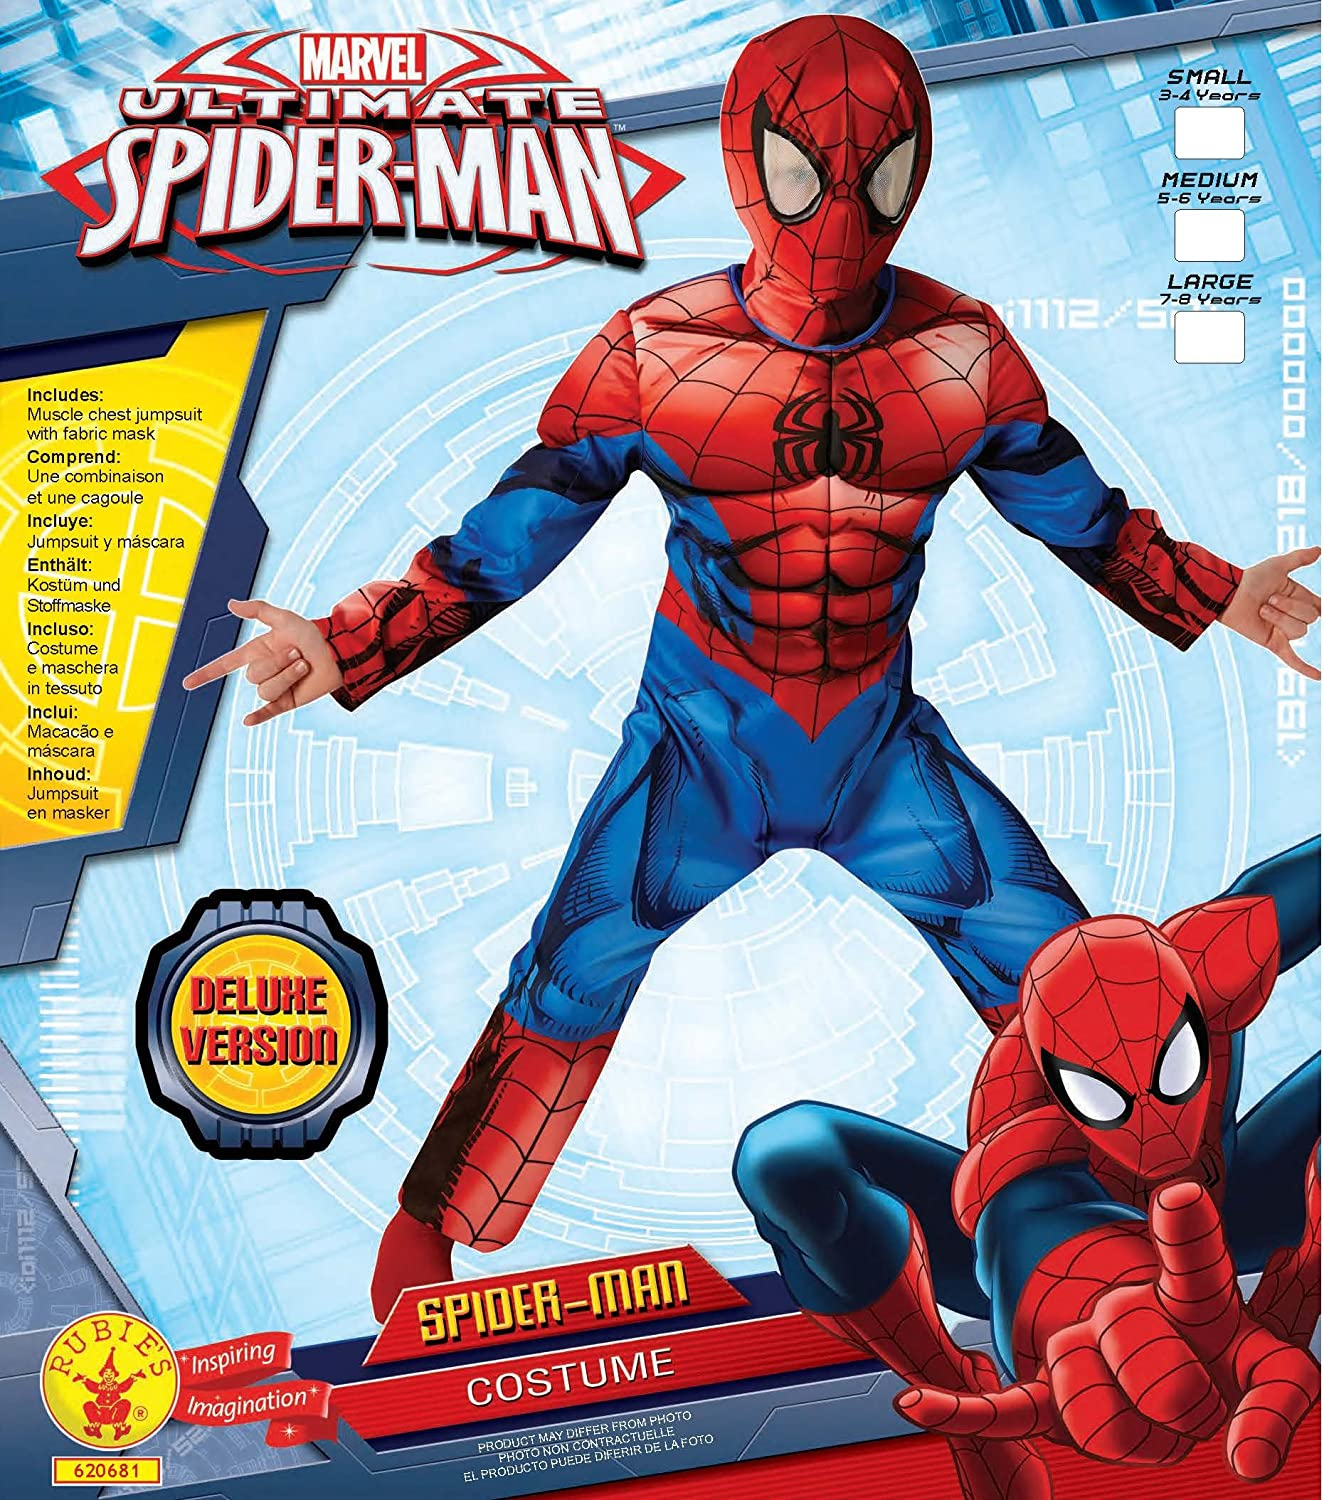 Rubieu0027s Official Deluxe Ultimate Spiderman Children Costume - Small Rubies Amazon.co.uk Toys u0026 Games  sc 1 st  Amazon UK & Rubieu0027s Official Deluxe Ultimate Spiderman Children Costume - Small ...